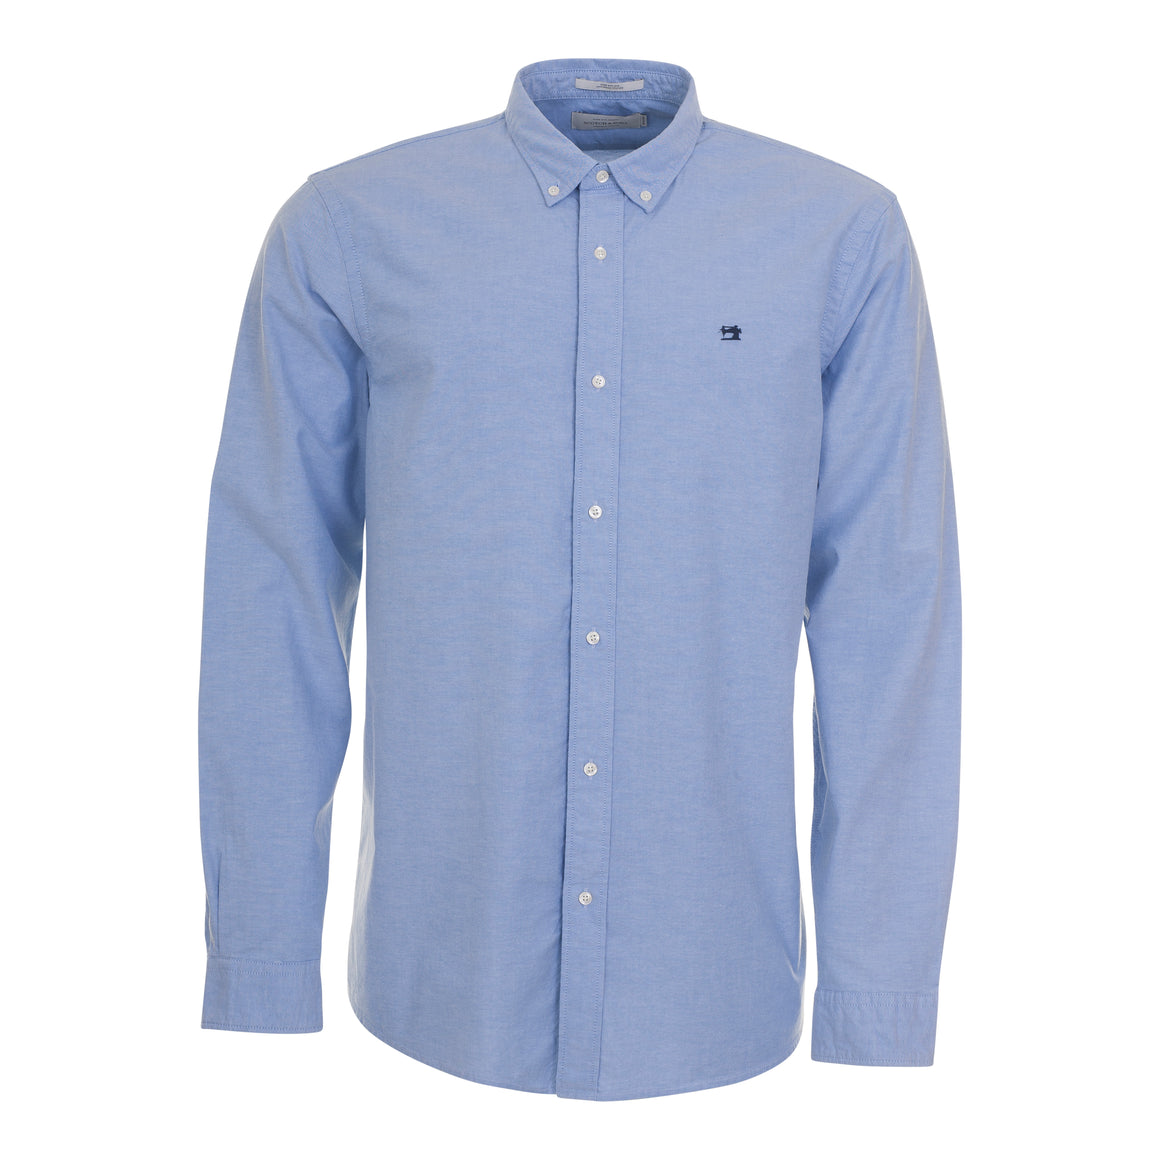 Long Sleeve Shirt for Men in Sky